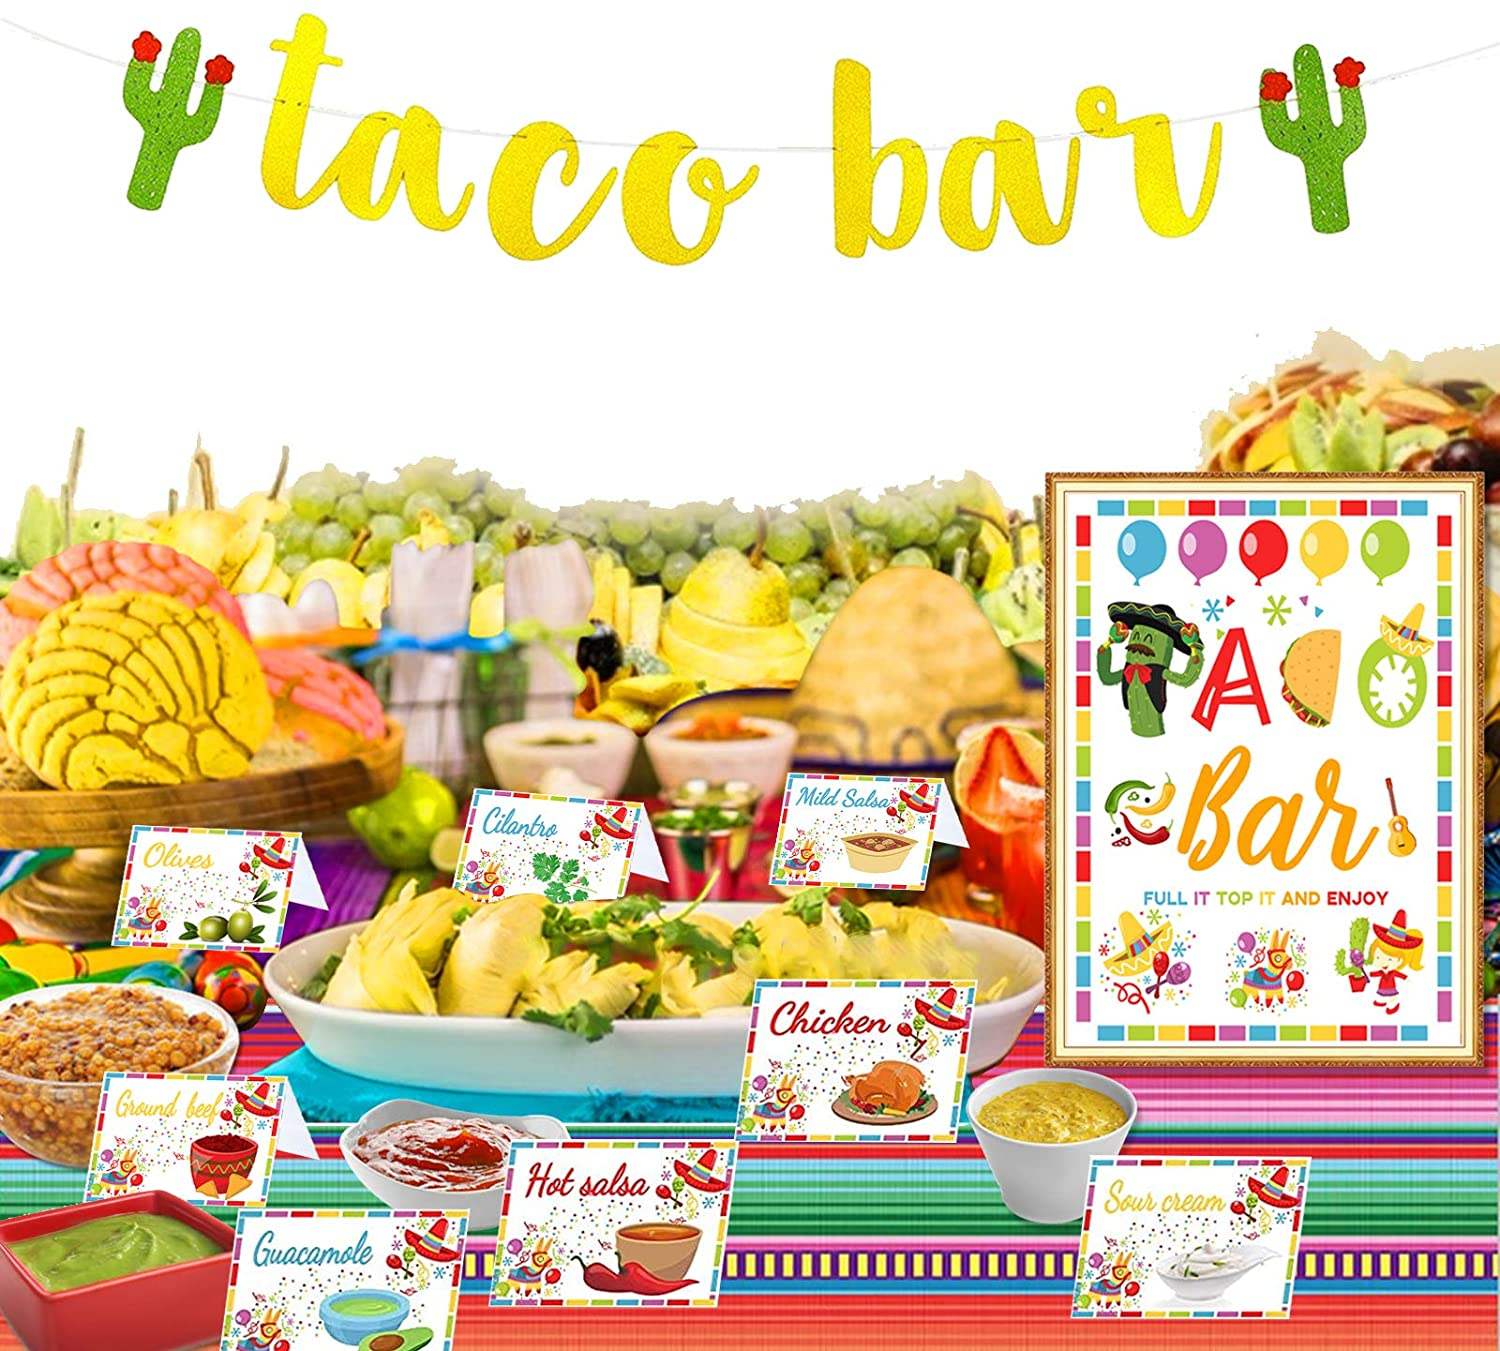 22 Pieces Taco Bar Decorations Set, 1 Set Cactus Banner Garland with 20Pcs Colorful Table Tent Cards and 1Pcs Big Card for Fiesta Mexican Birthday Cinco de Mayo Day of The Dead Party Decoration